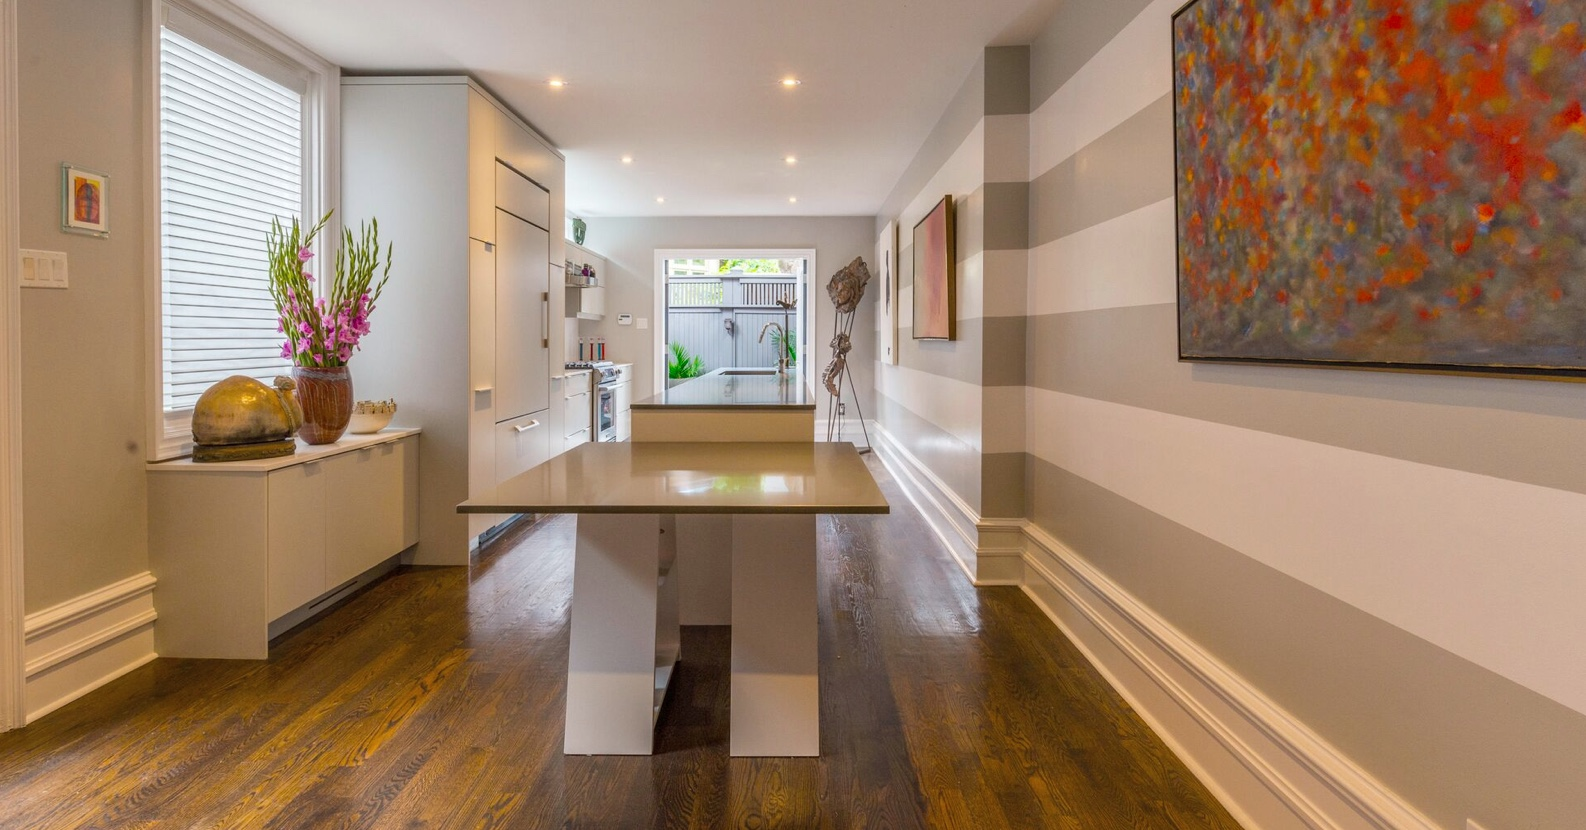 After home staging kitchen photo | 42 Tranby Rd in Toronto